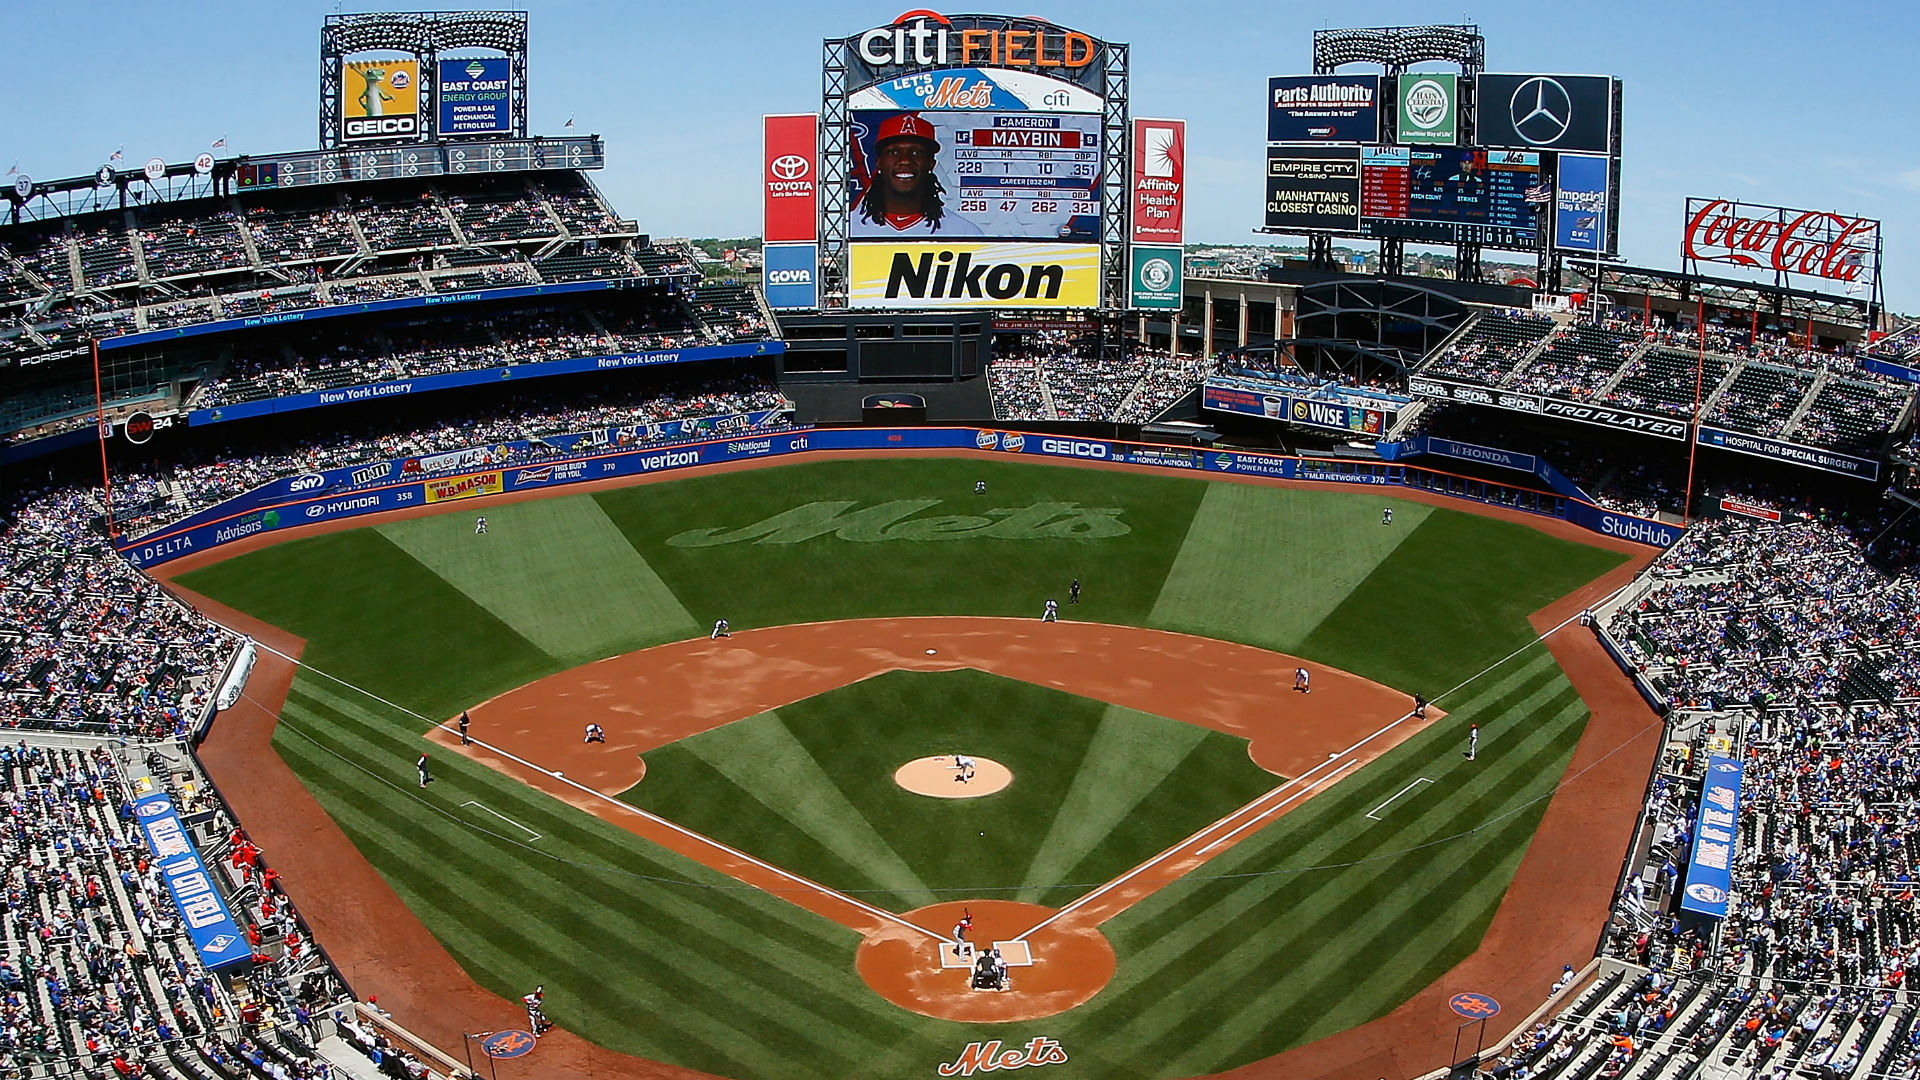 Yankees-Rays could take place at one of these two neutral sites